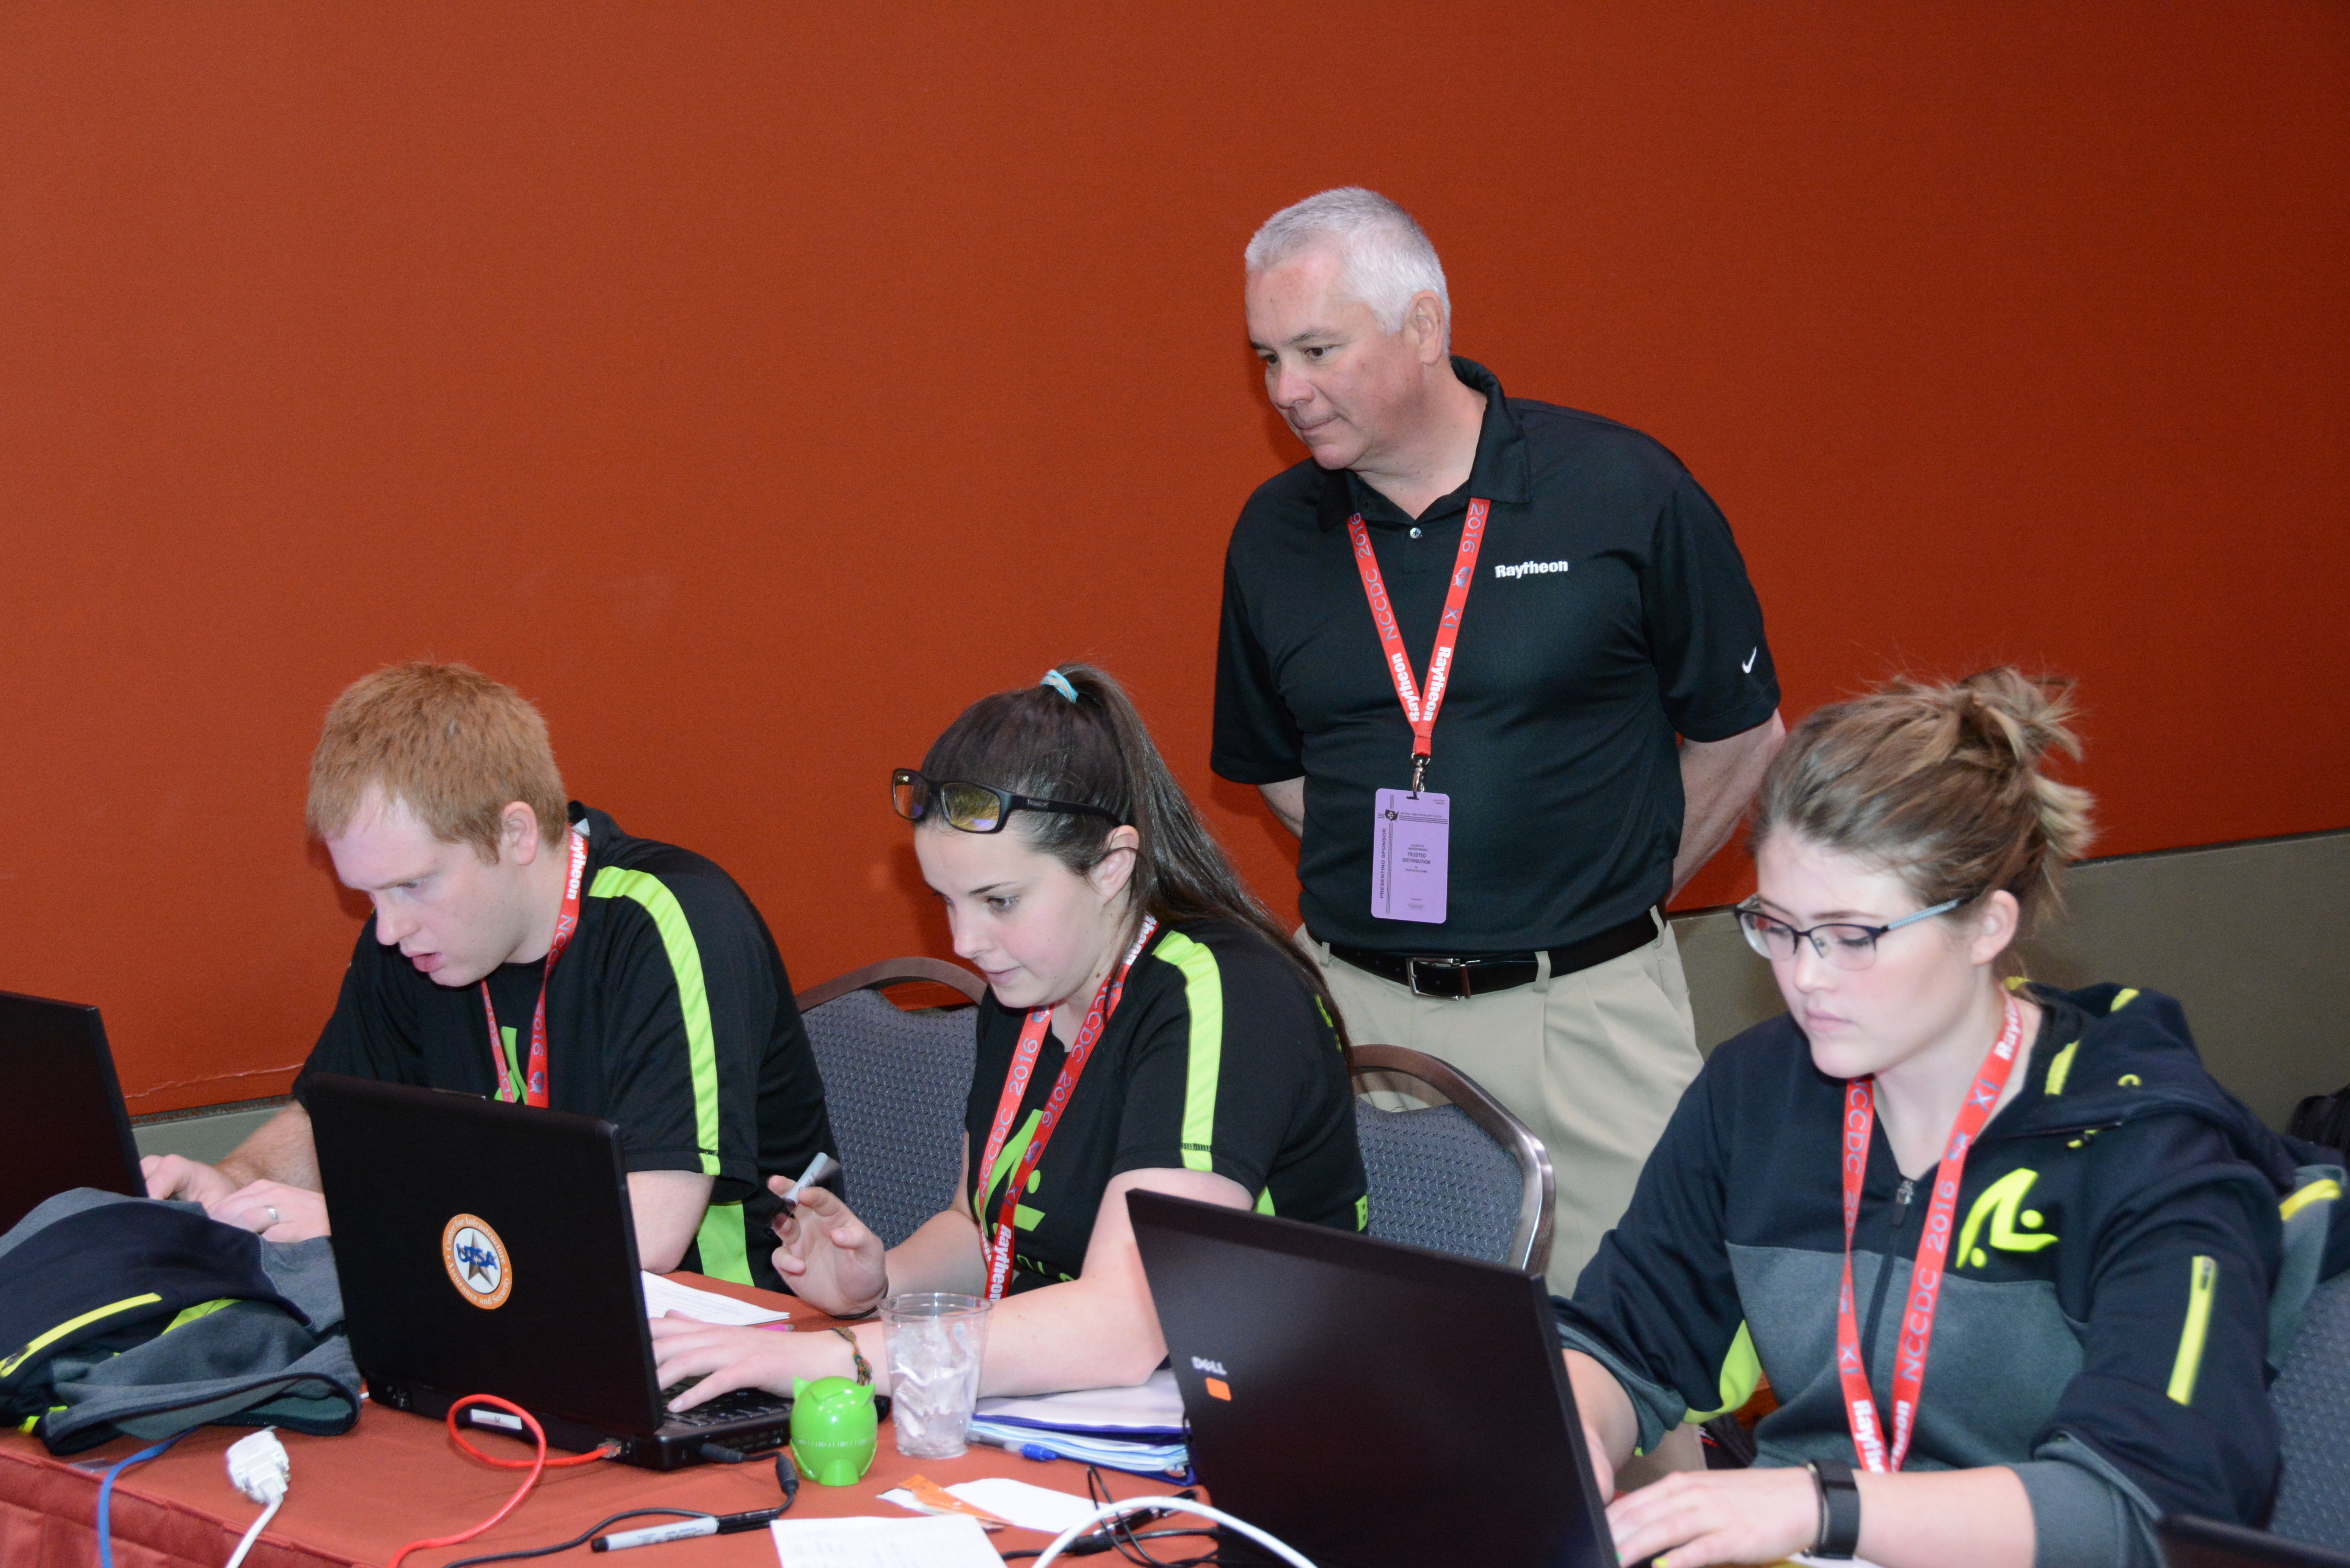 Brigham Young University team members with Raytheon's Jack Harrington at the National Collegiate Cyber Defense Championship.